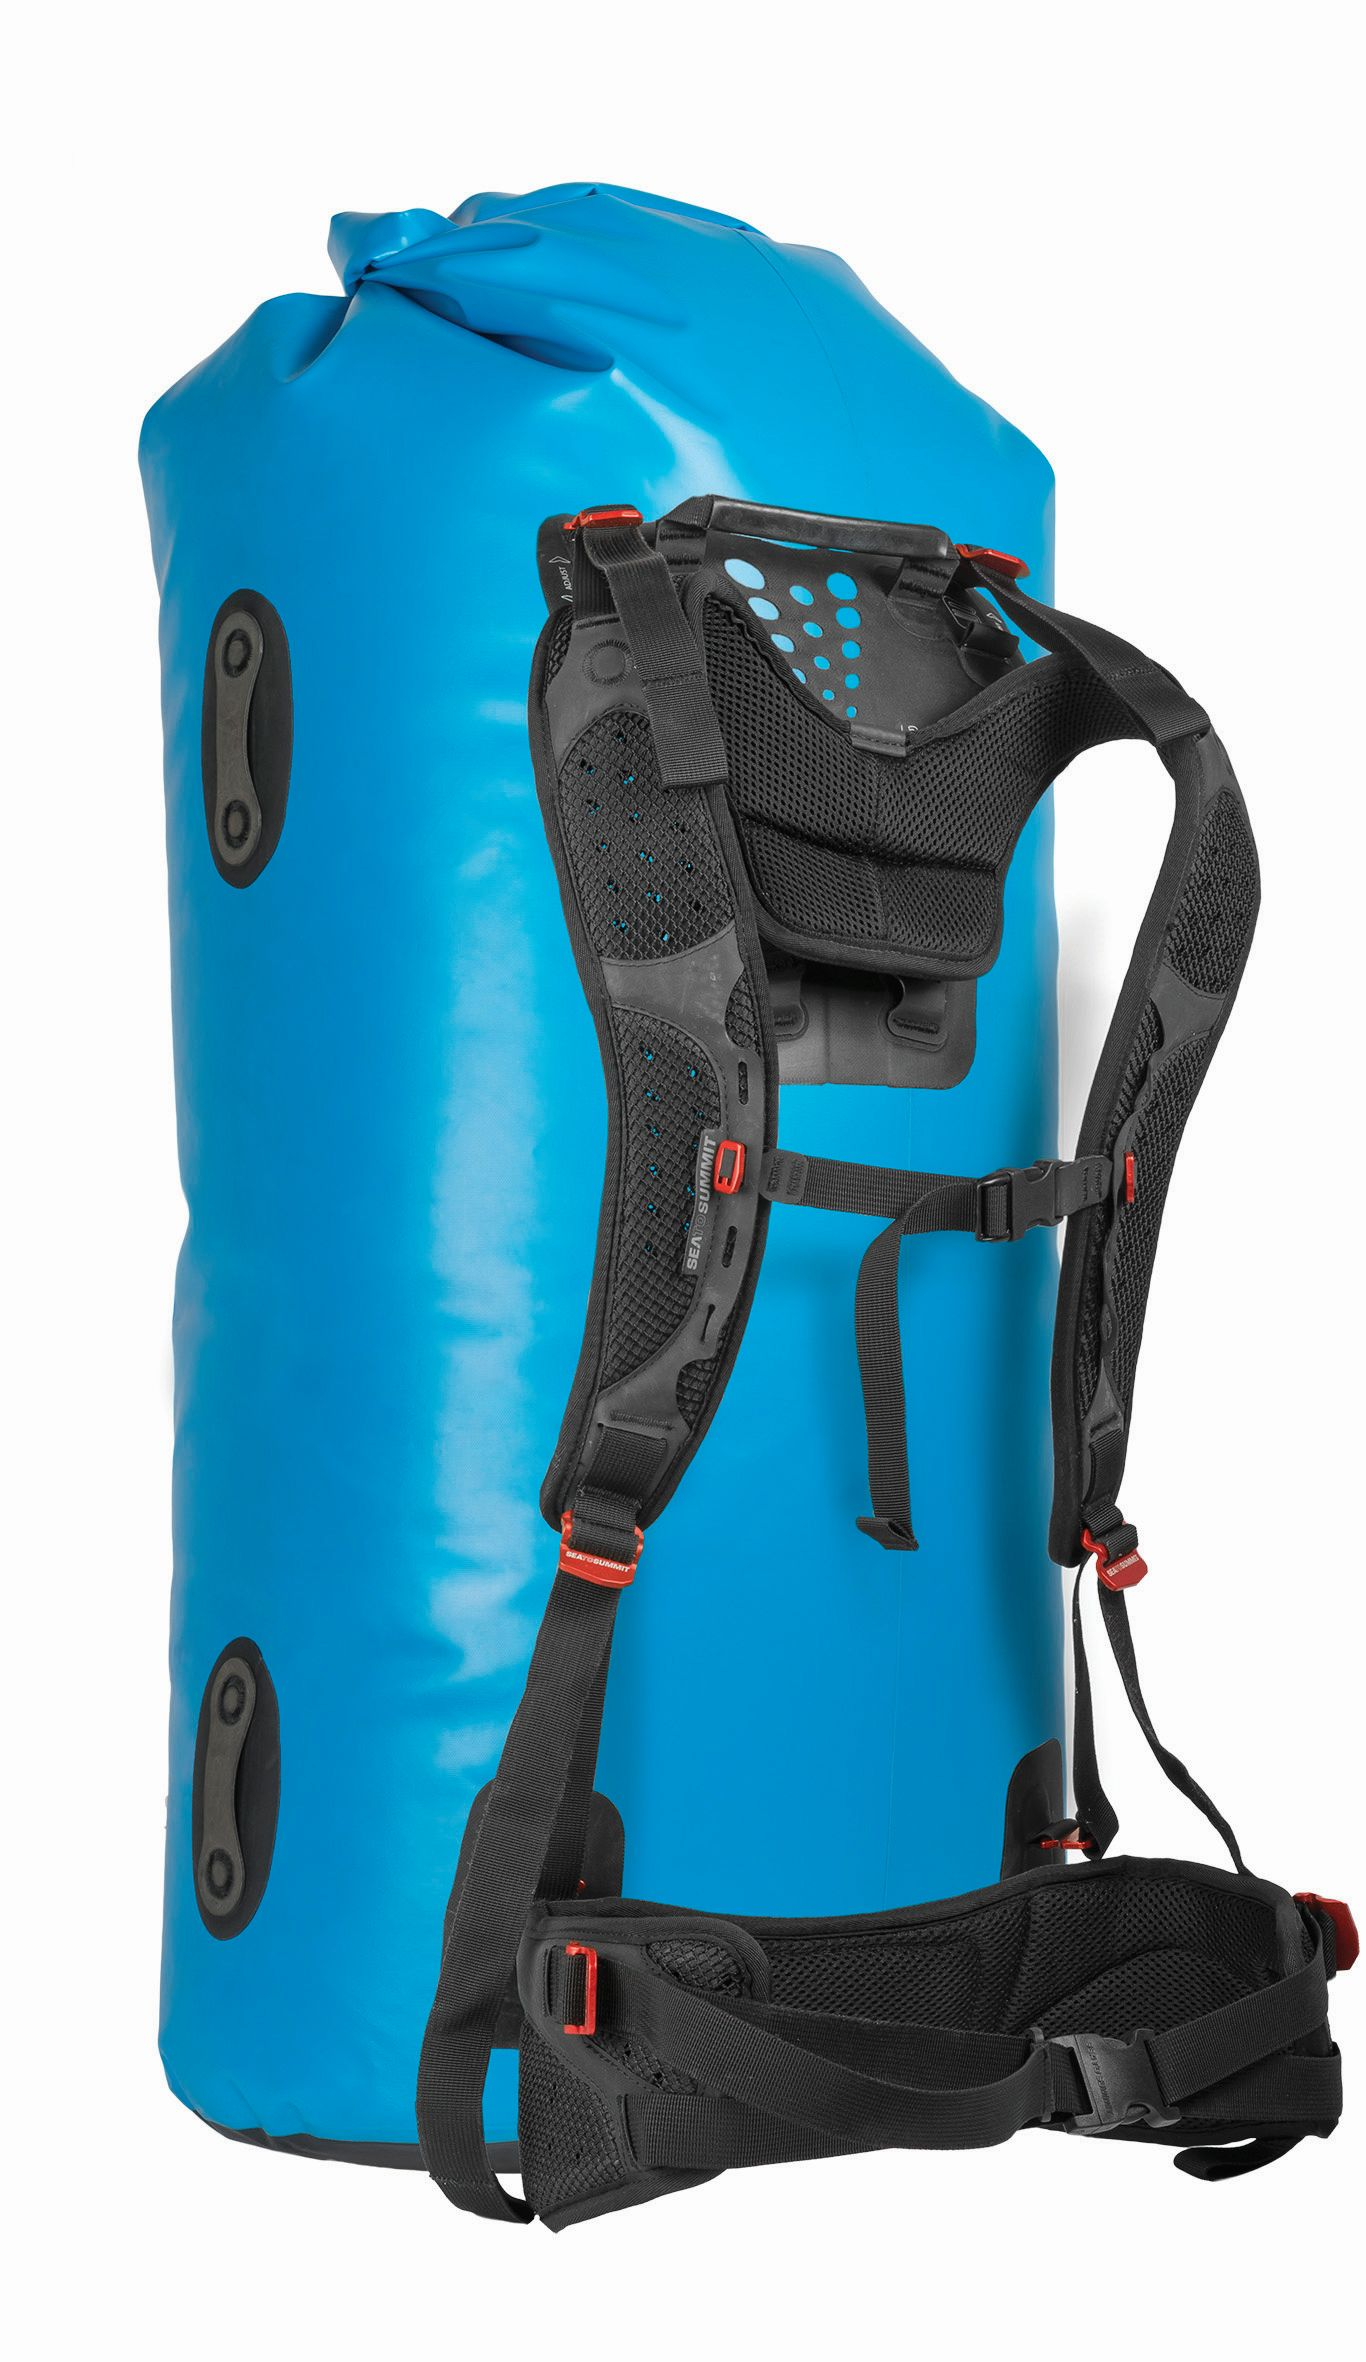 Sea To Summit Hydraulic Dry Bag with Harness 90L Blue-30